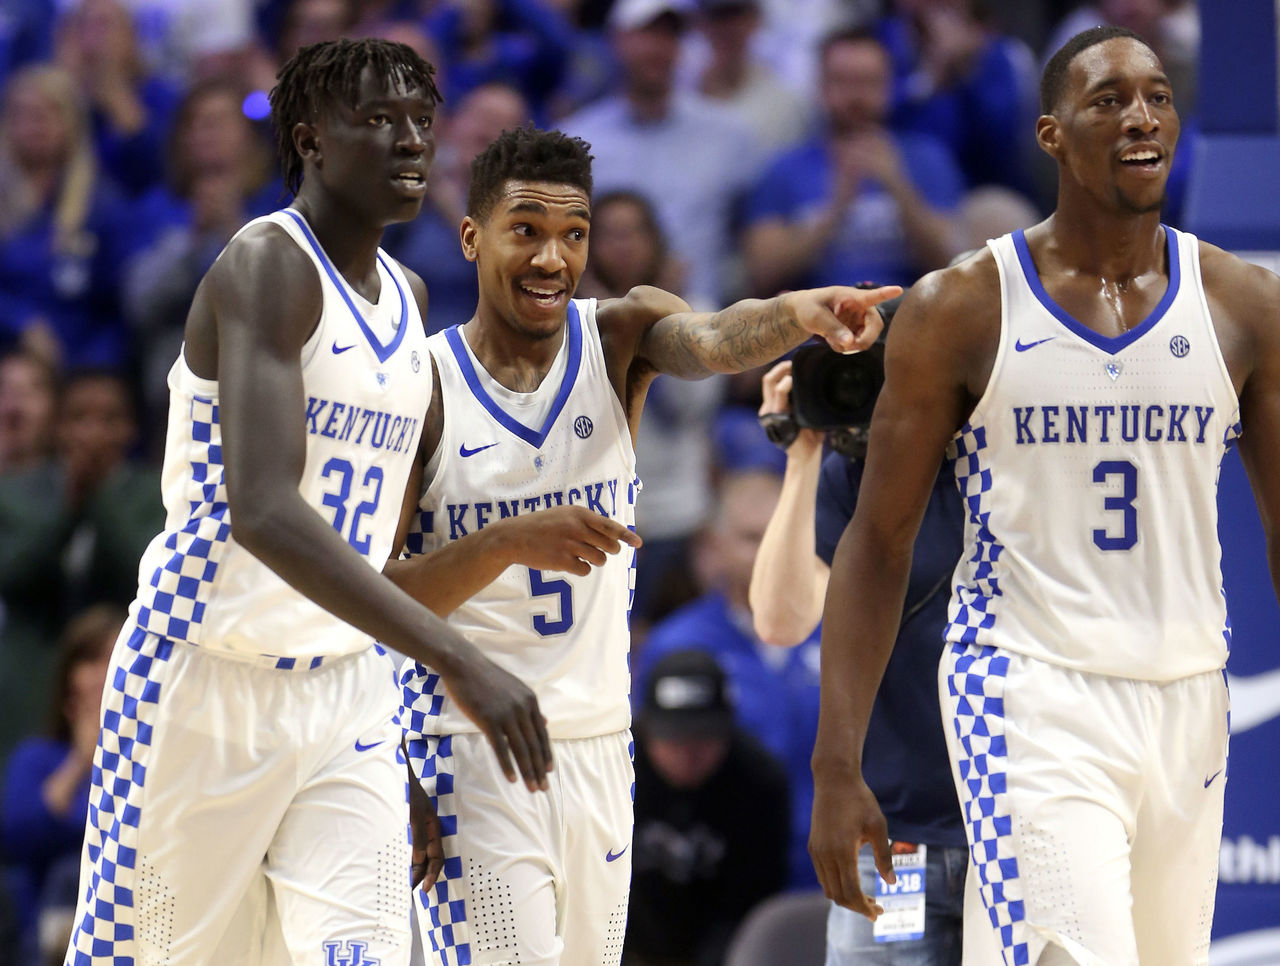 Cropped_2017-02-25t220023z_748591371_nocid_rtrmadp_3_ncaa-basketball-florida-at-kentucky